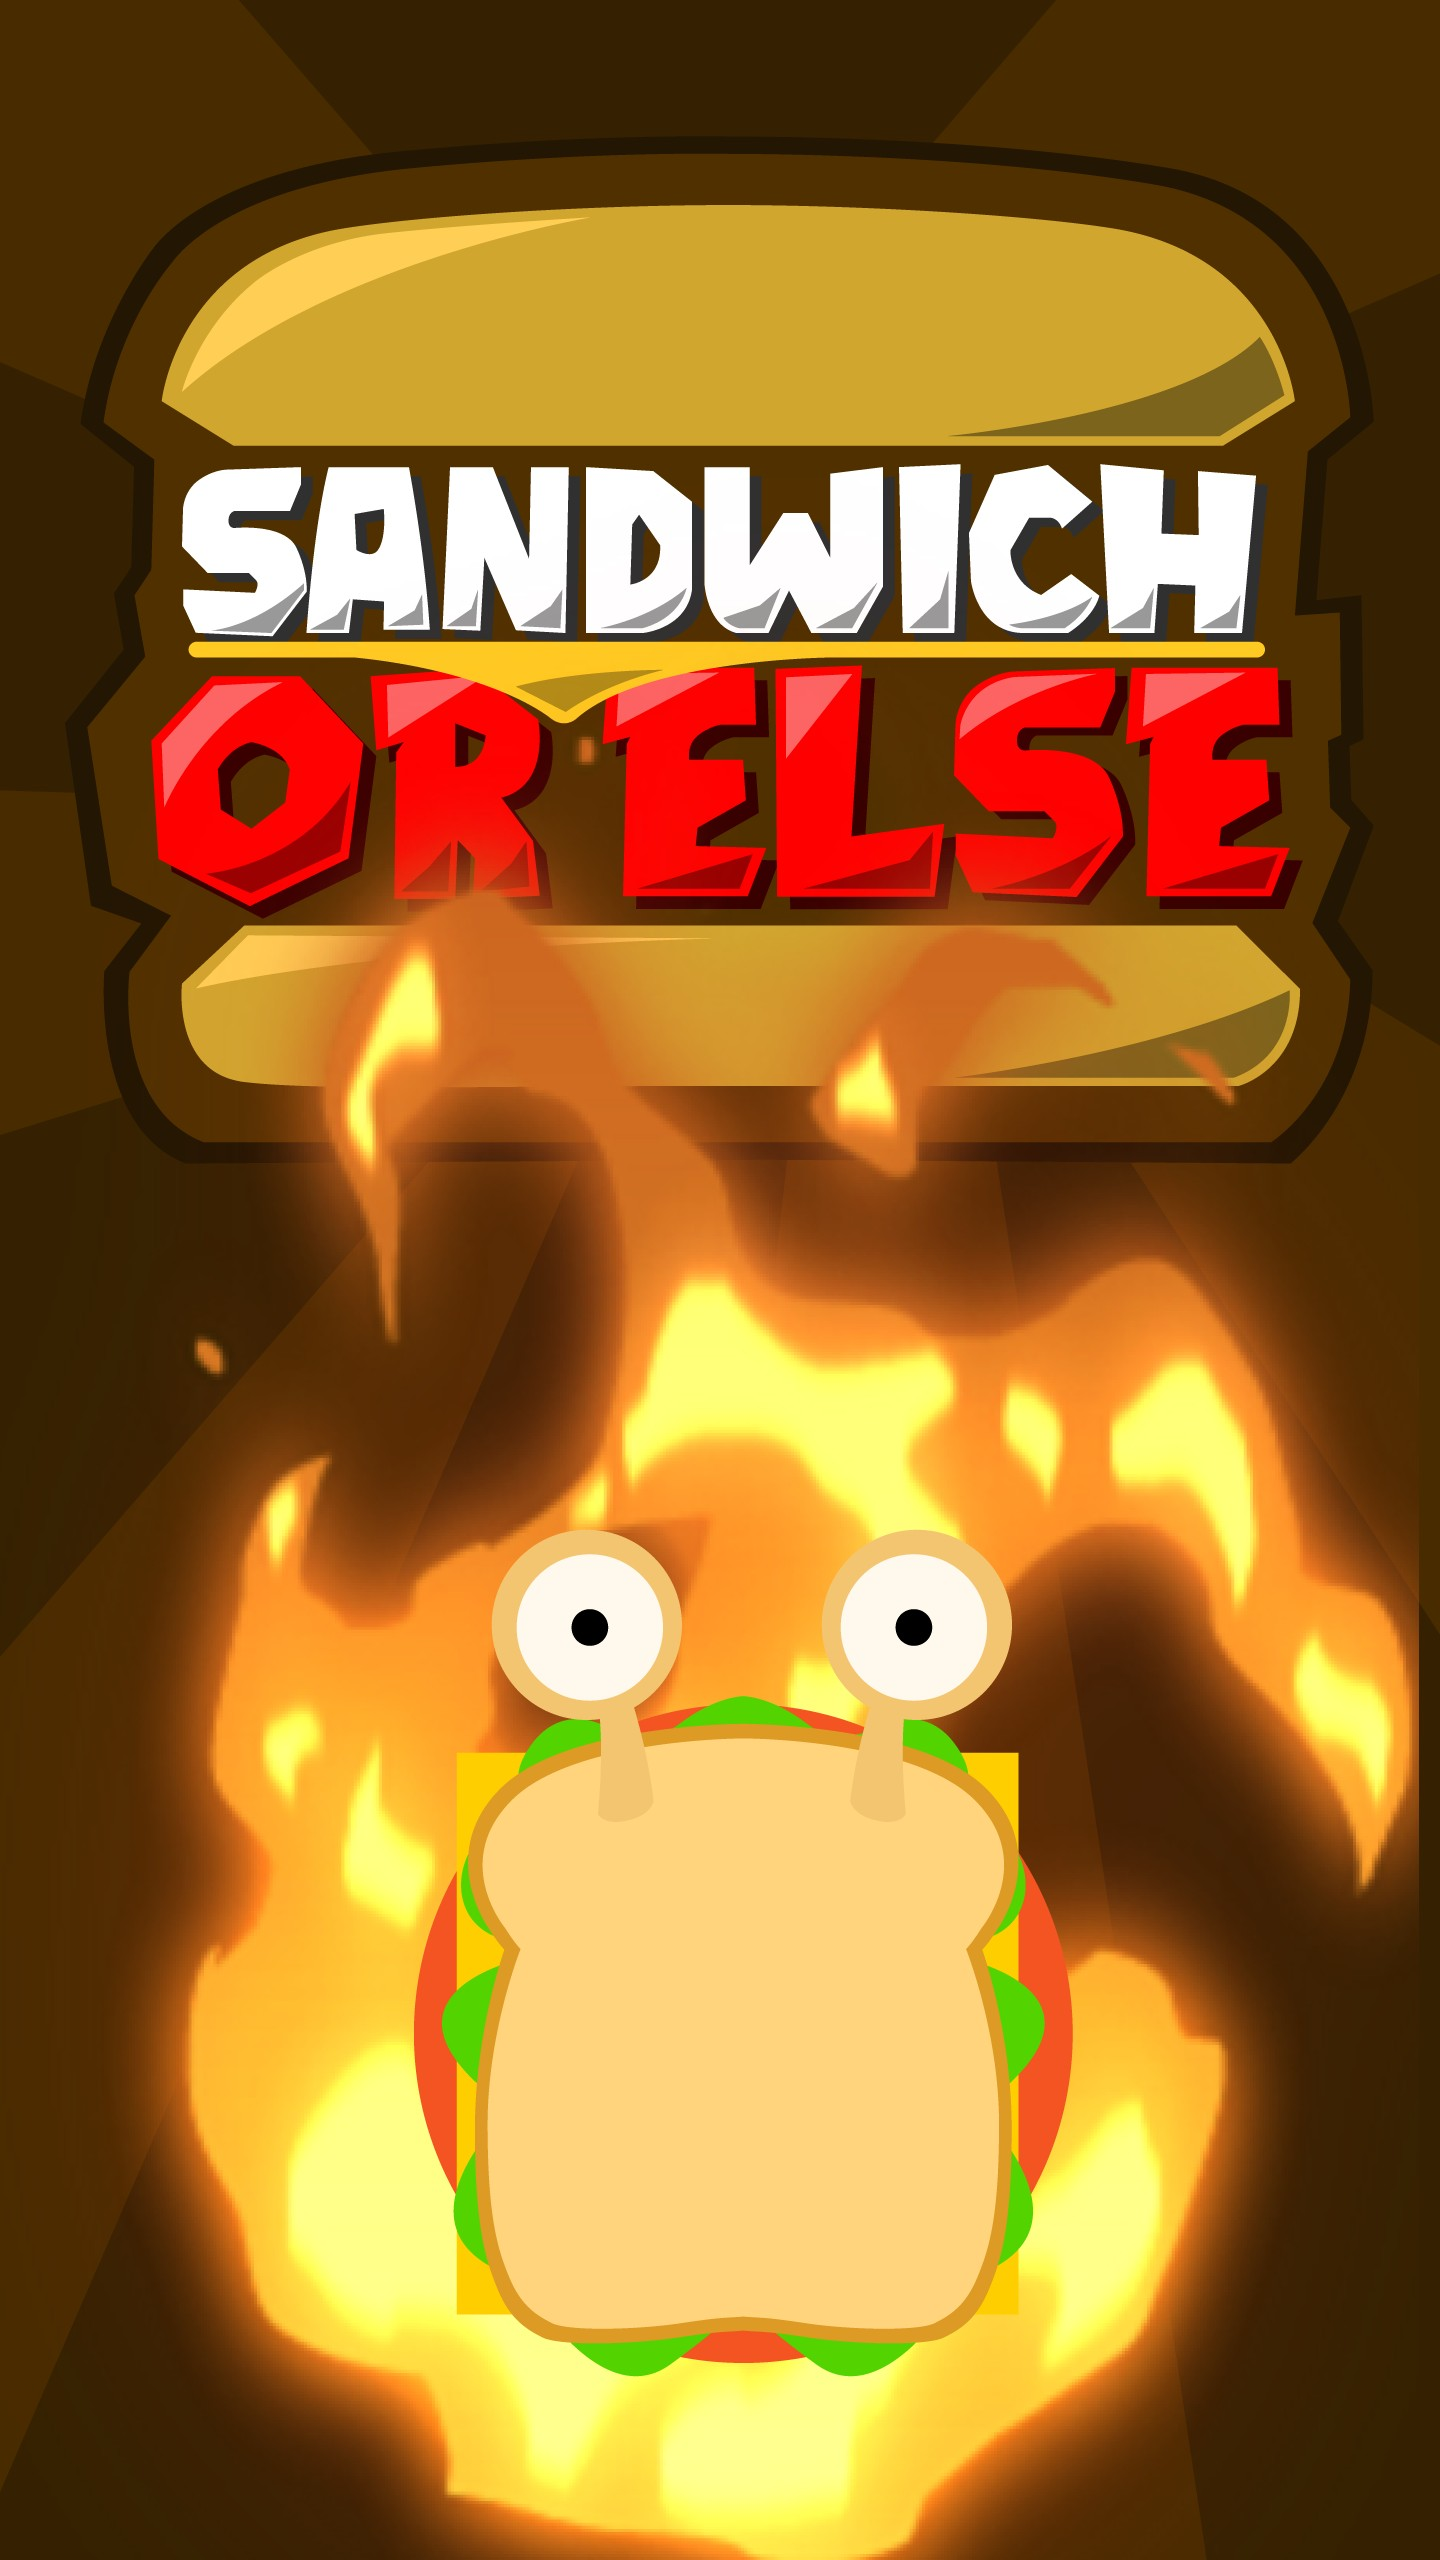 Sandwich OR ELSE